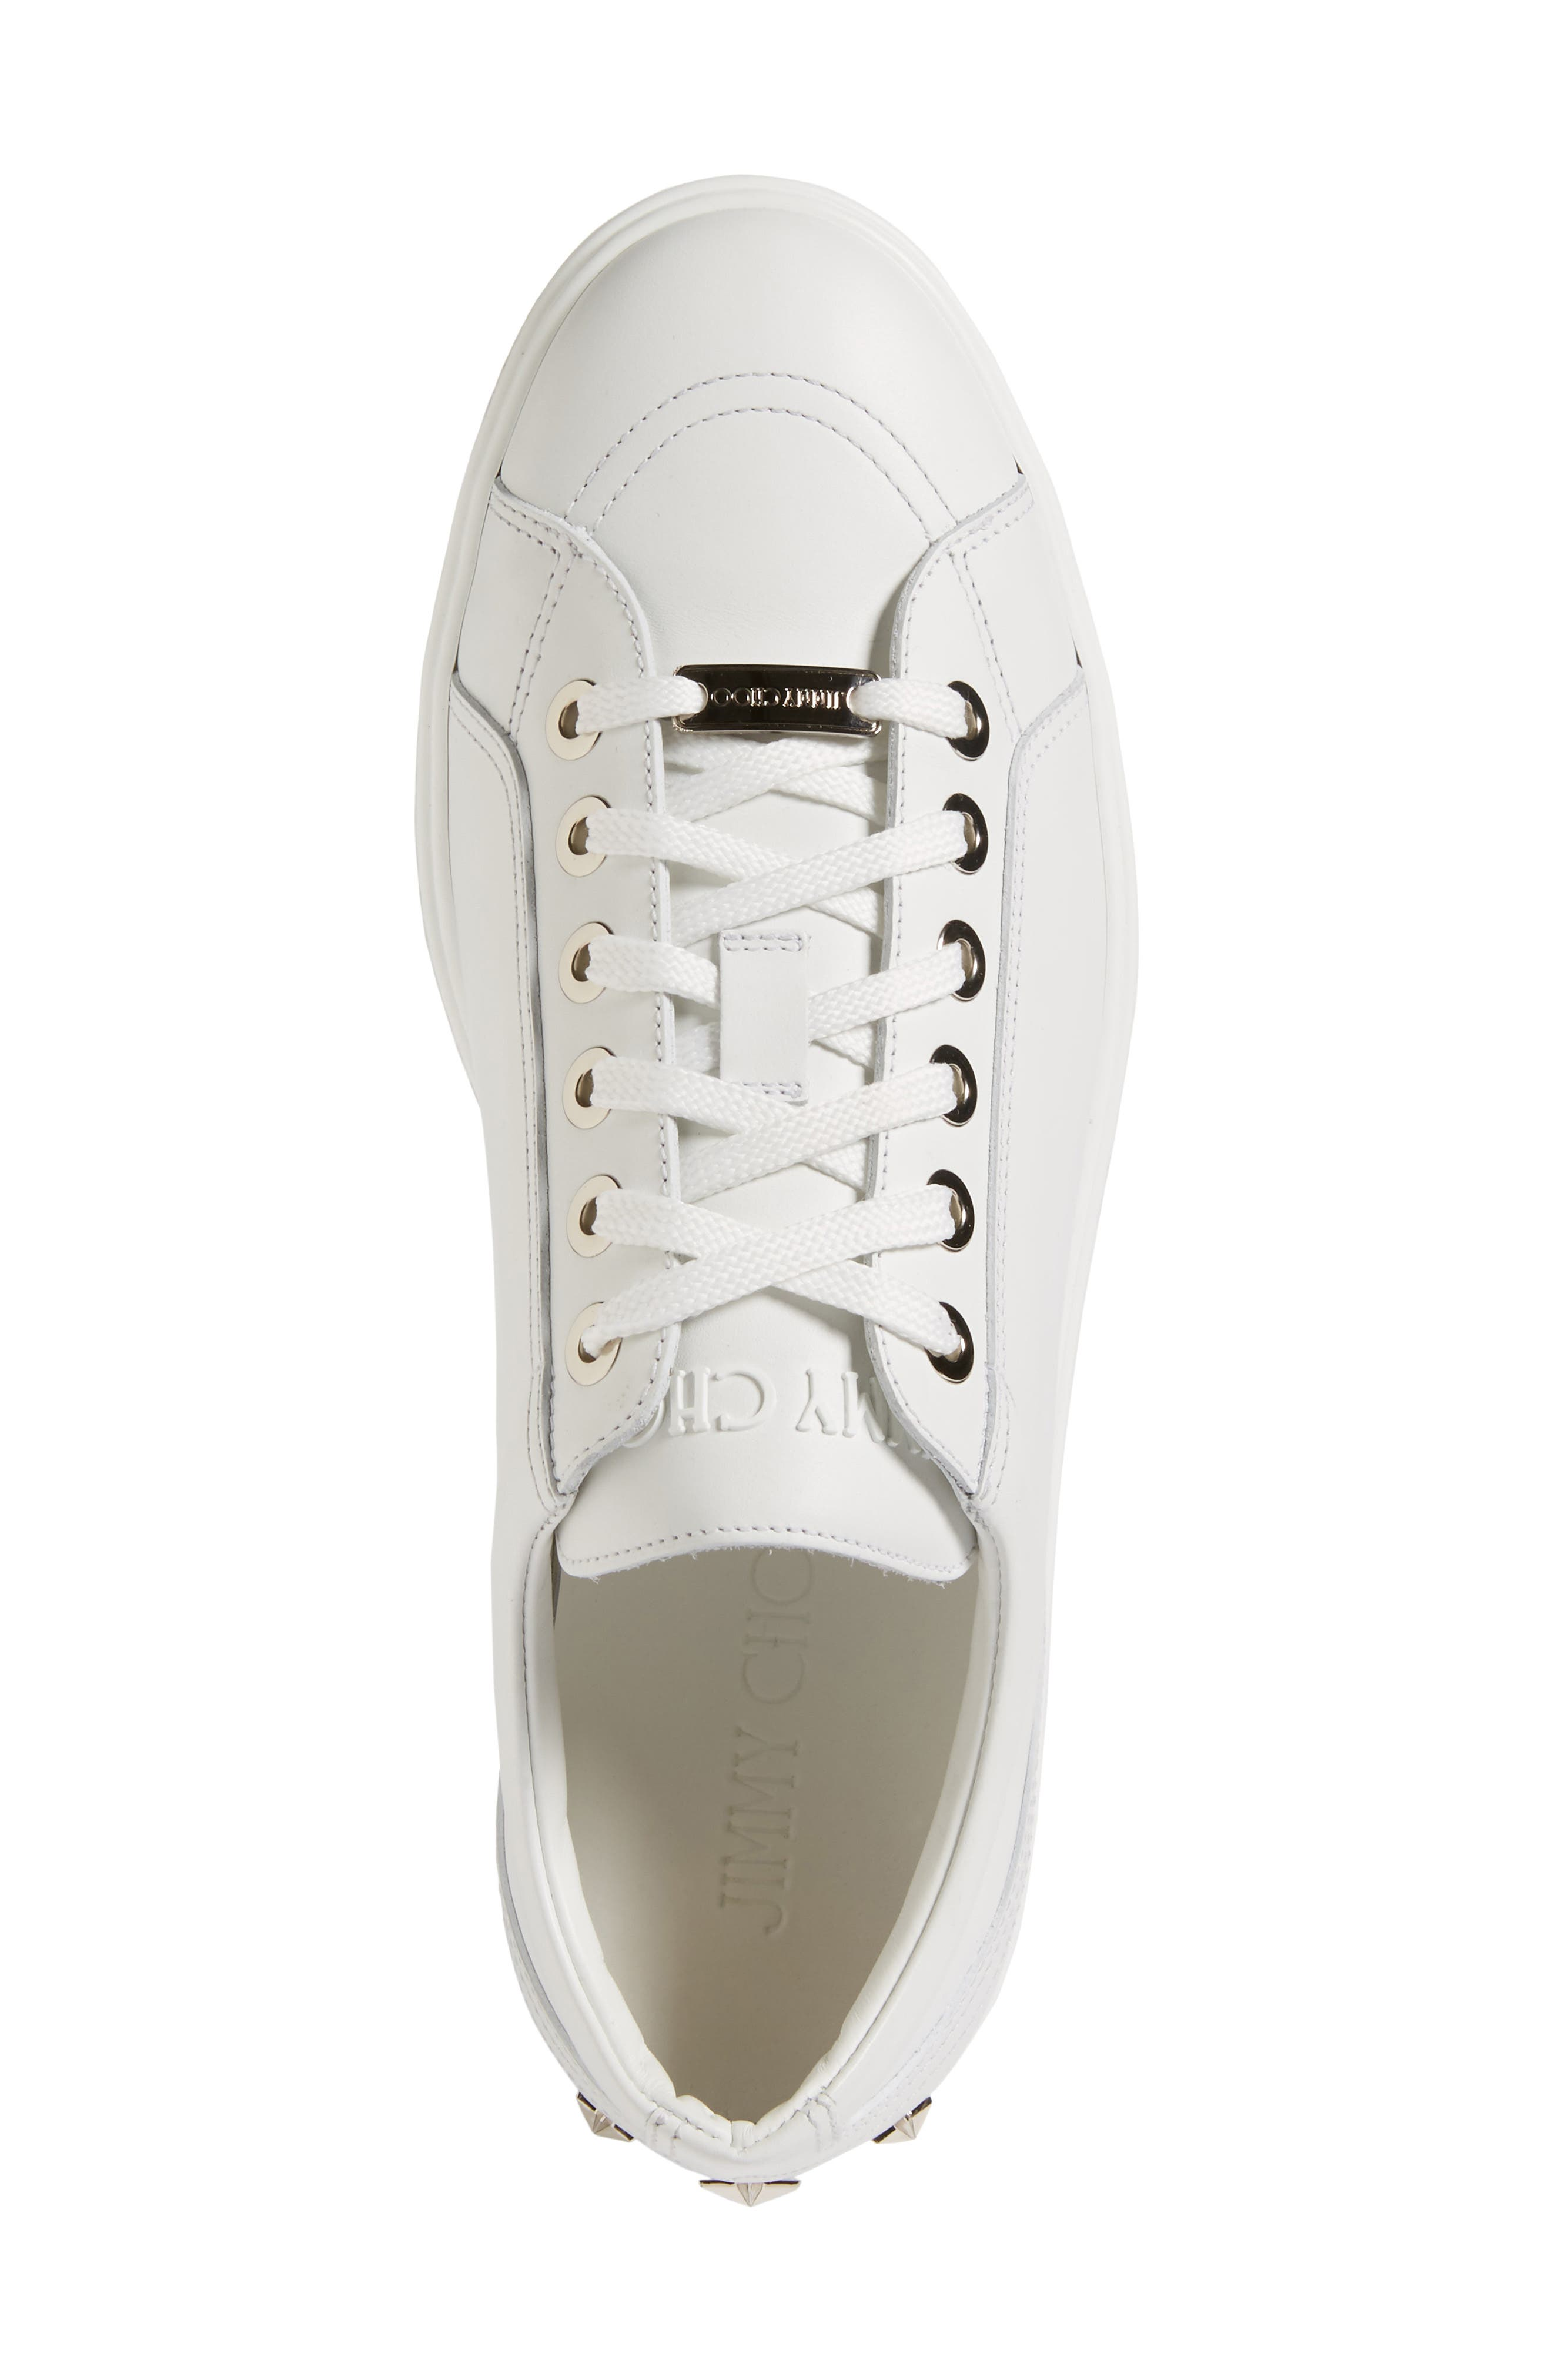 Cash Star Sneaker,                             Alternate thumbnail 5, color,                             Ultra White